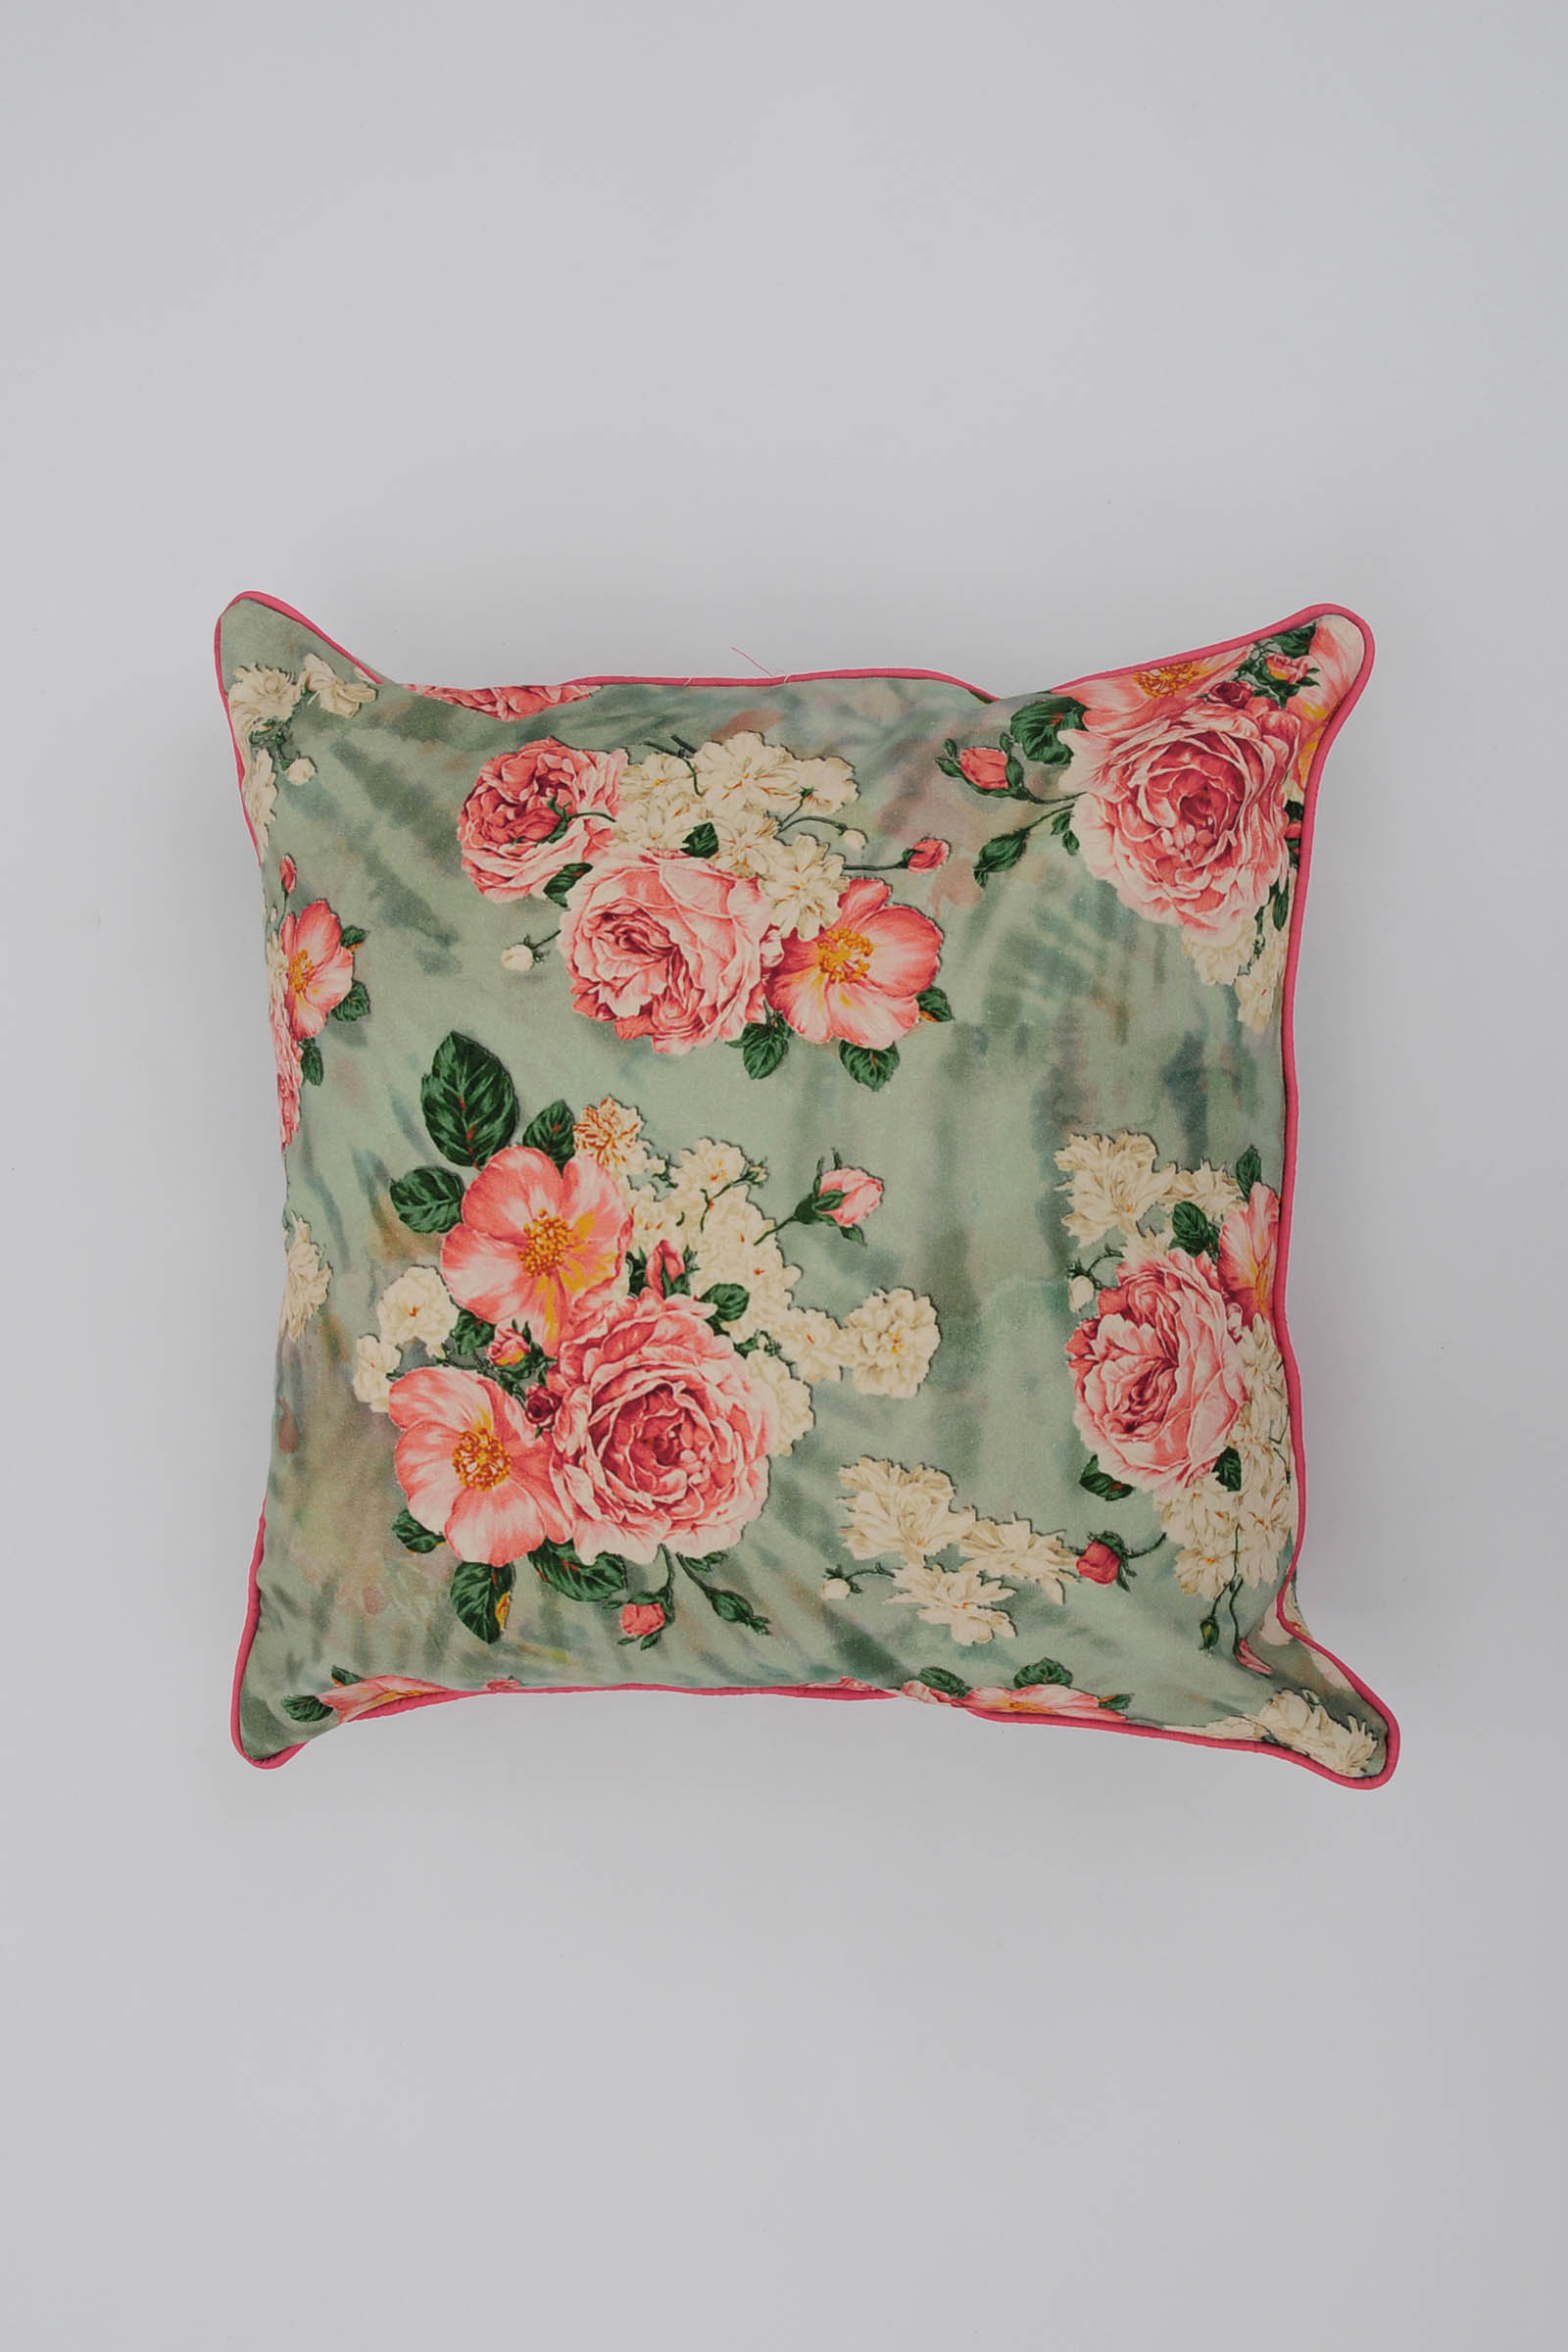 Forever Beauty 16*16 Cushion Cover